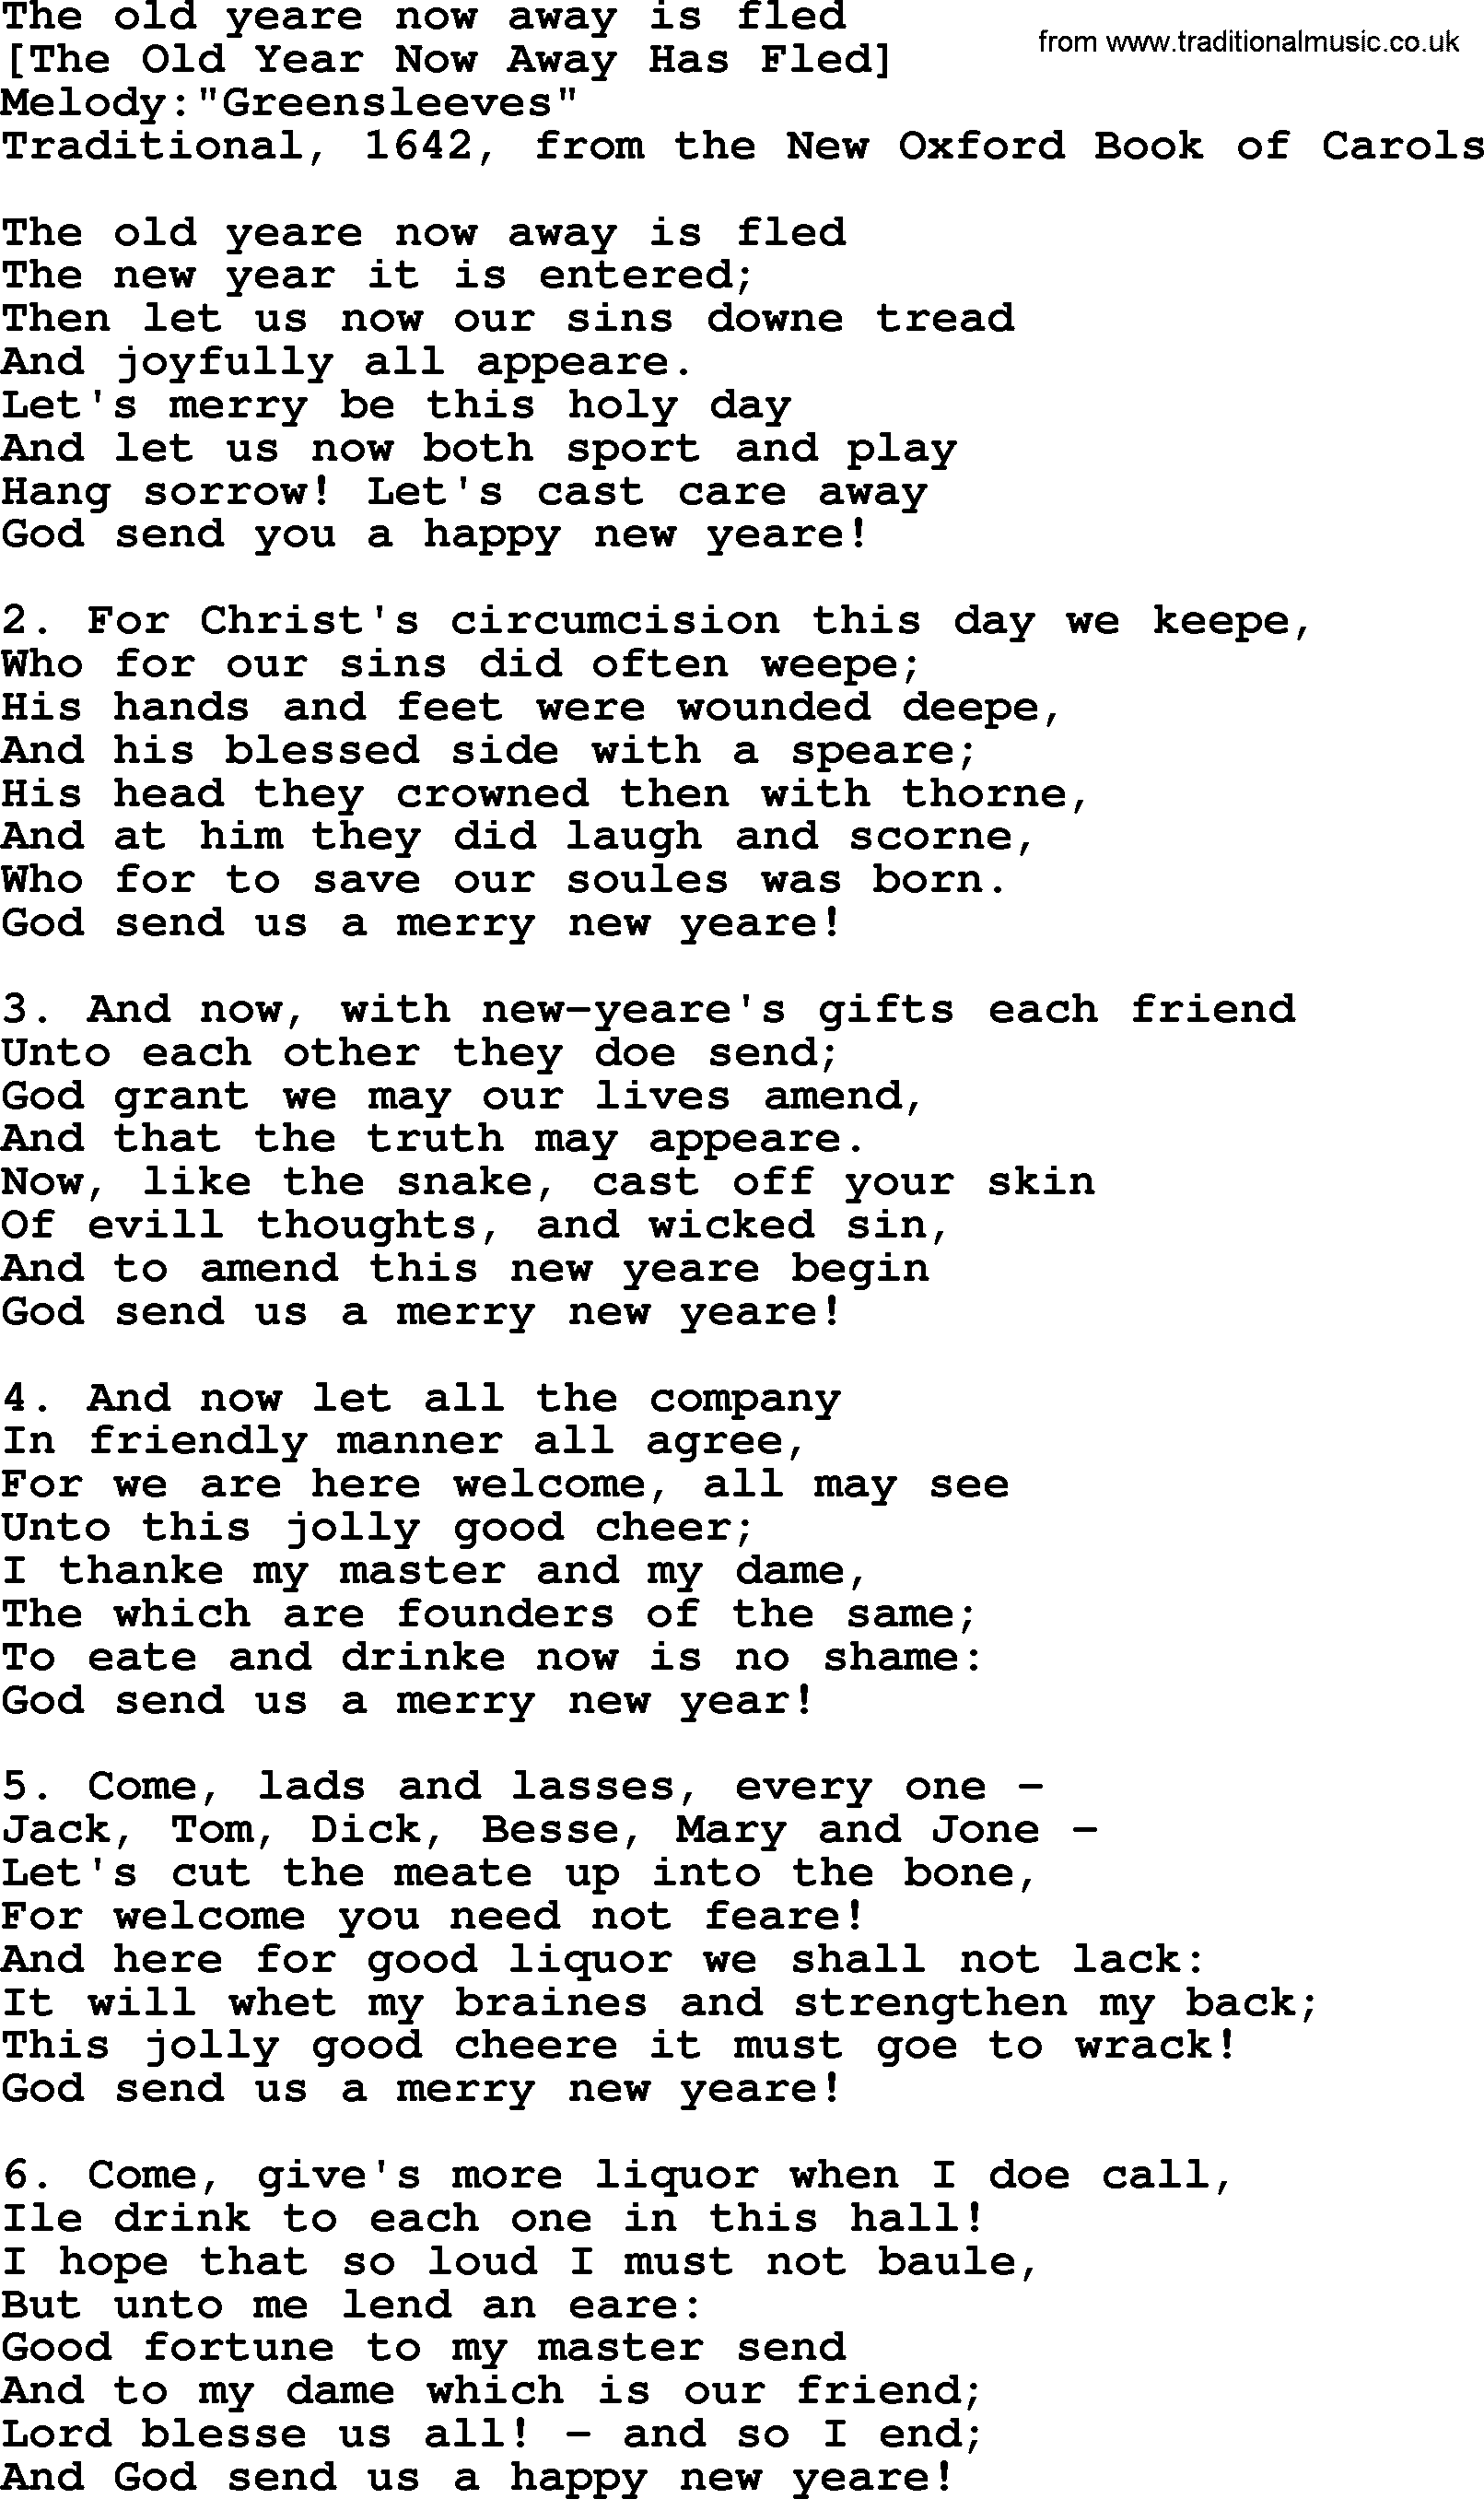 Old English Song Lyrics For The Old Yeare Now Away Is Fled With Pdf